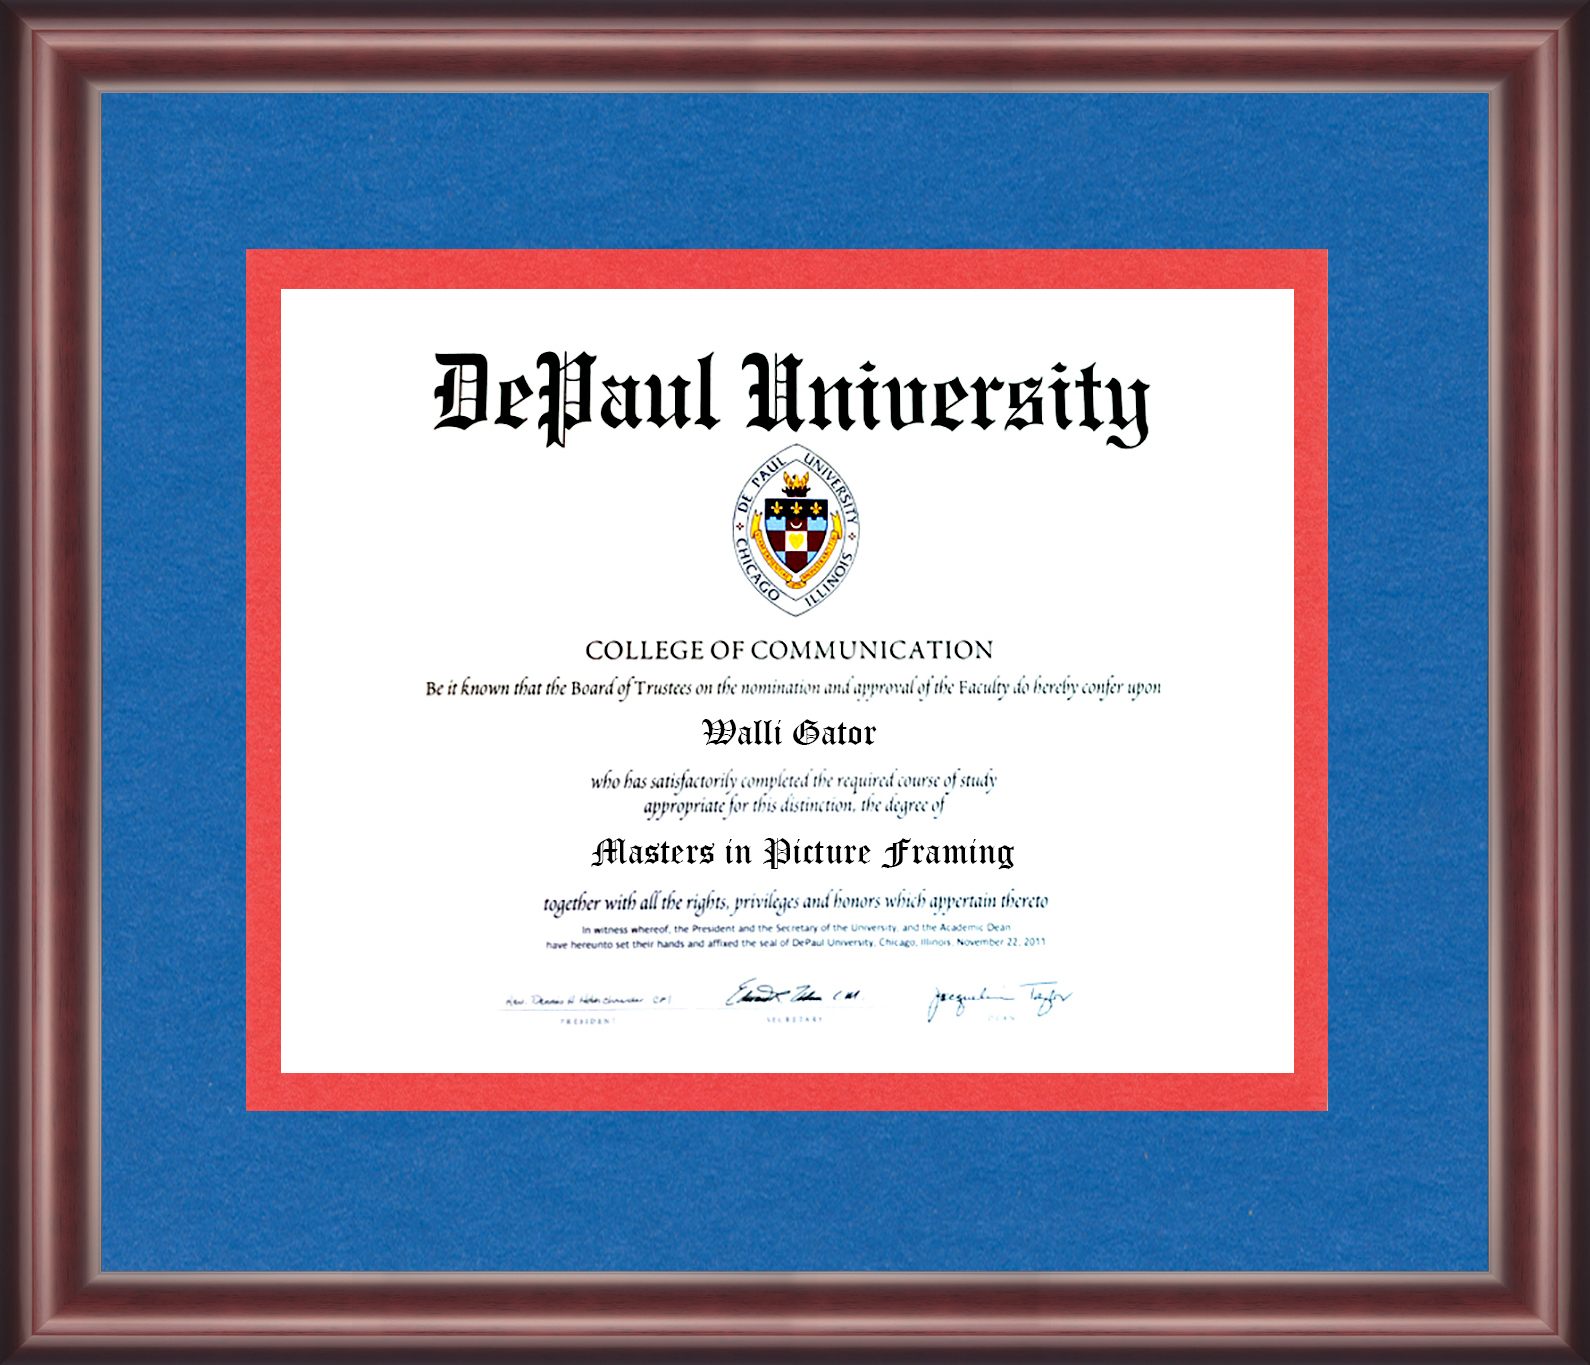 DePaul University Diploma Frame - Talking Walls